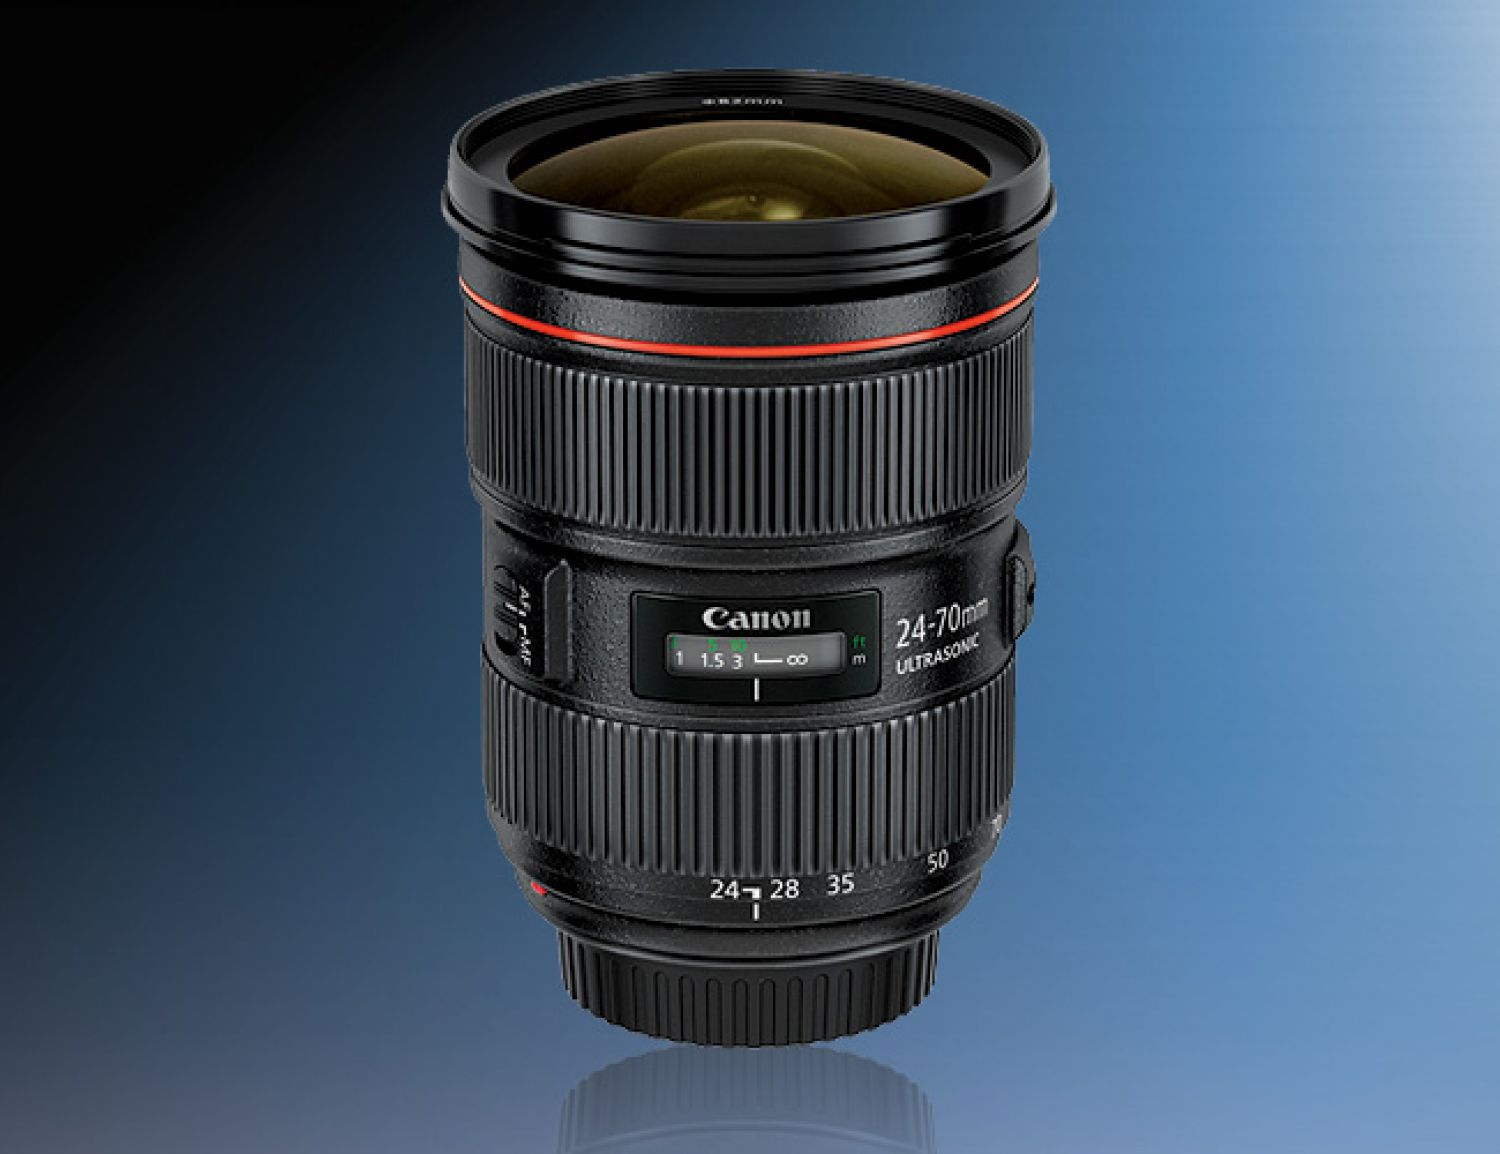 Canon EF 24-70mm ƒ/2.8L IS II USM